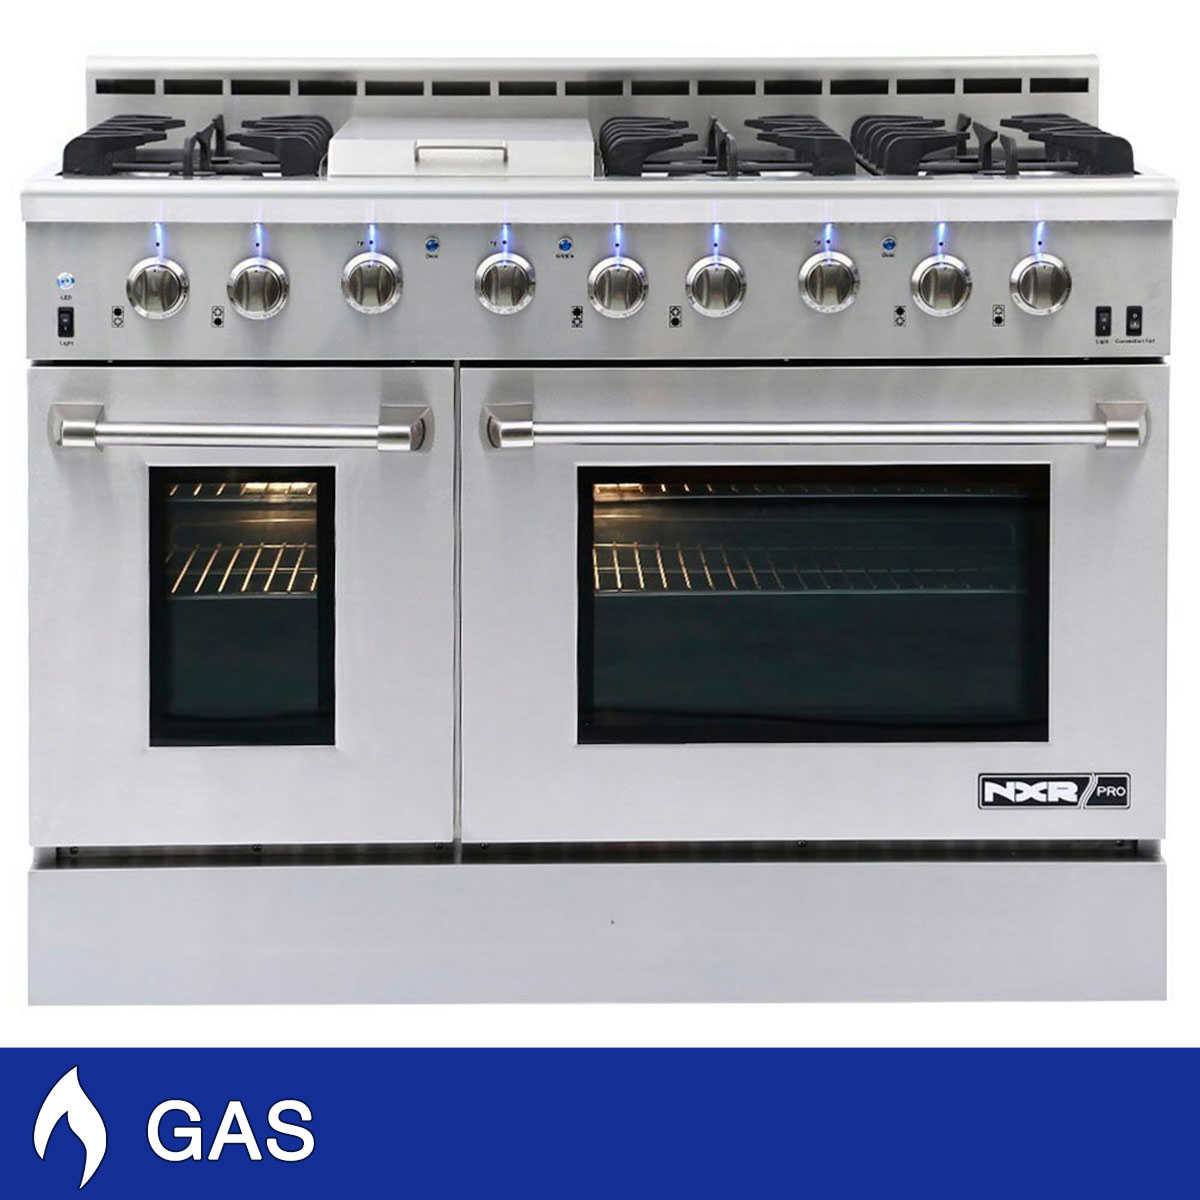 Professional Electric Ranges For The Home Ranges Costco